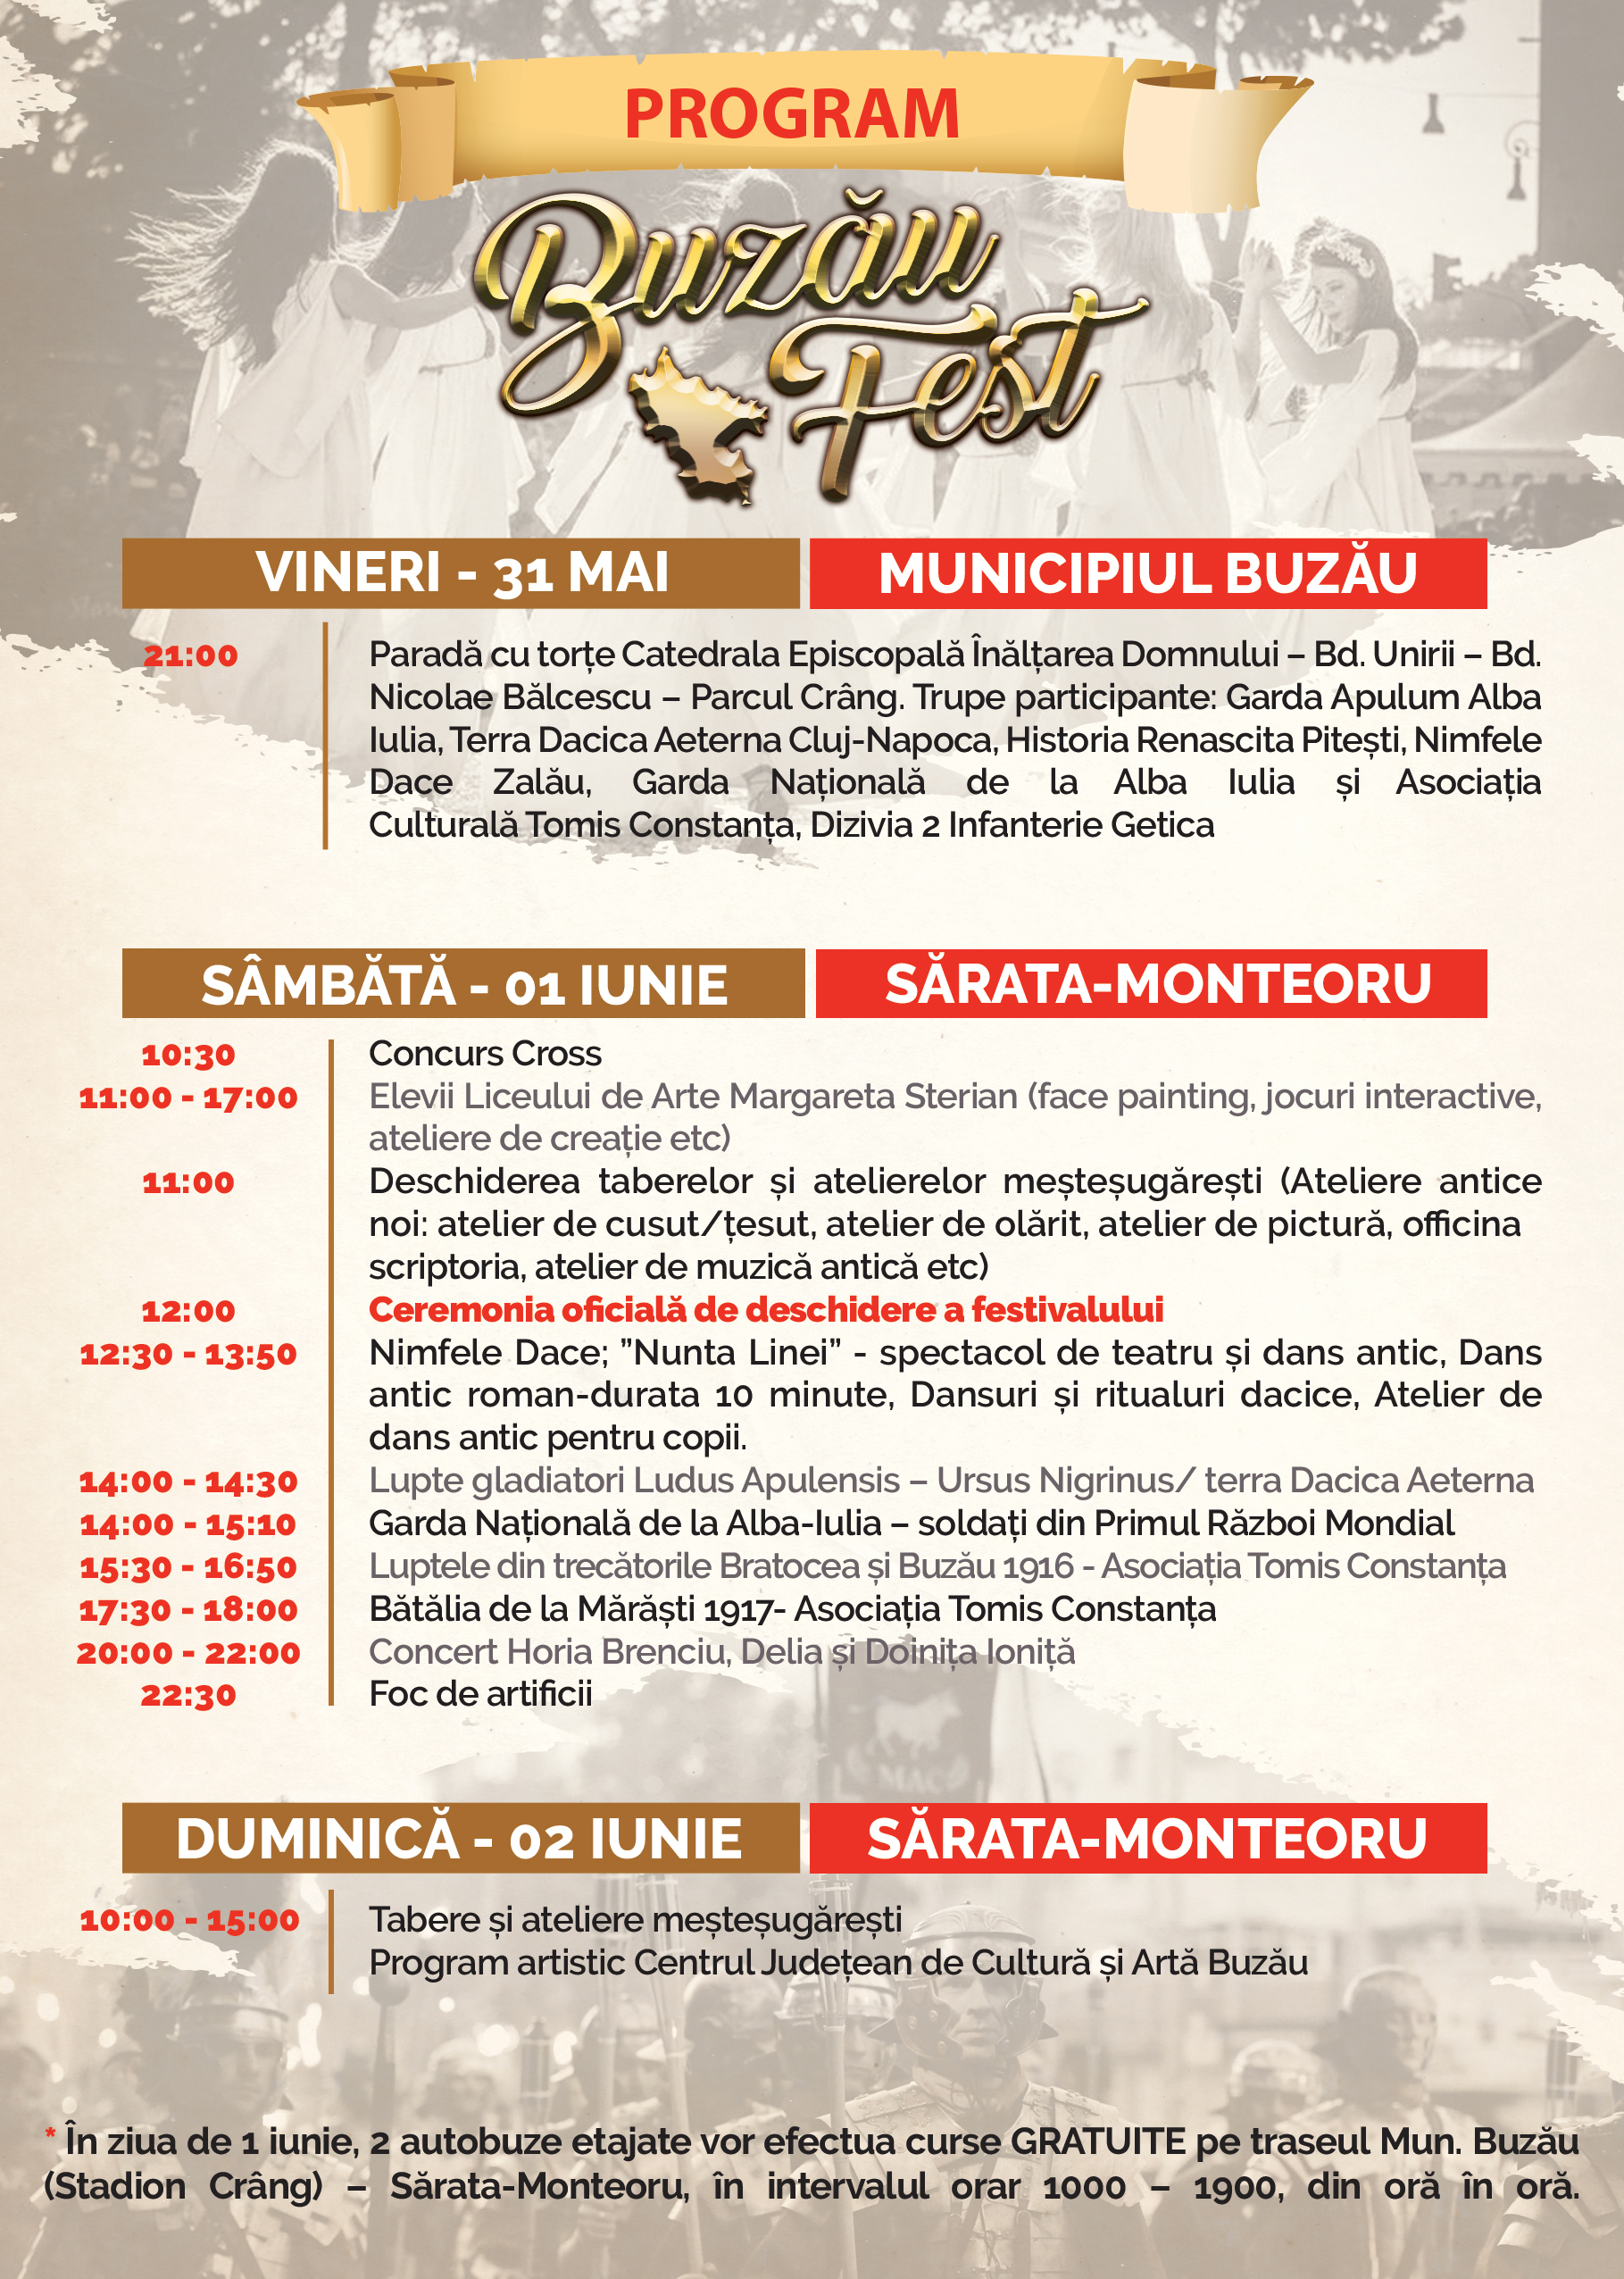 Buzau Fest Program